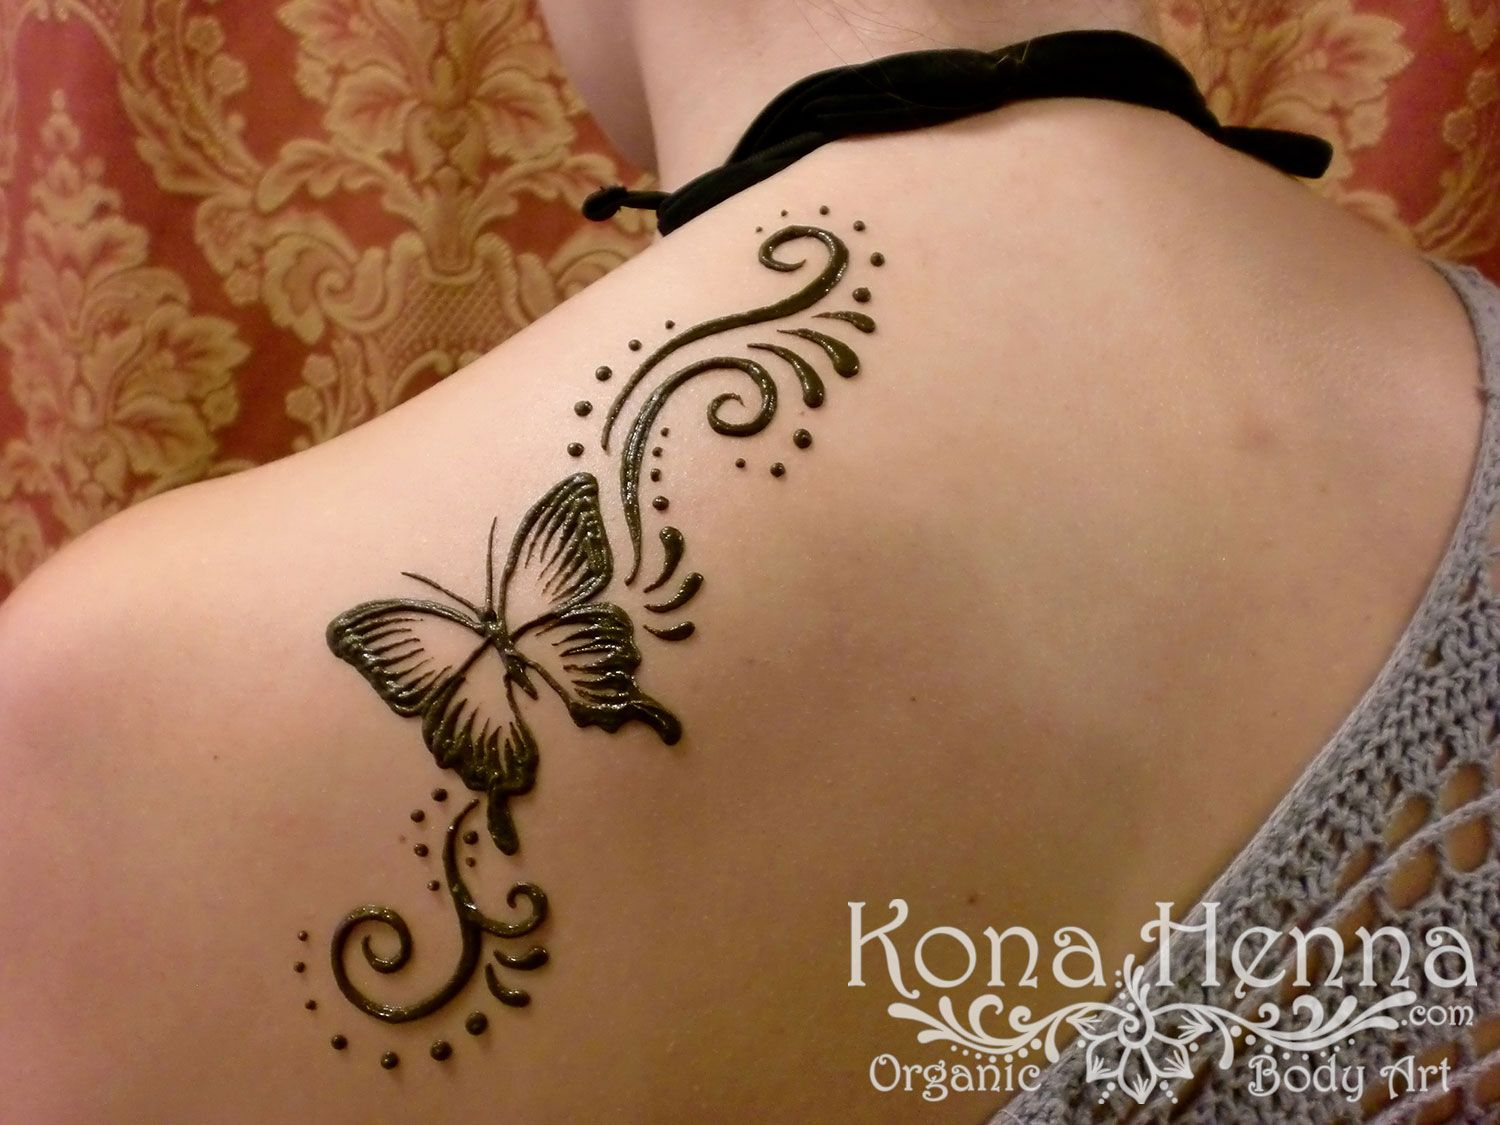 Kona Henna Studio Shoulders Gallery Henna Tattoo Designs